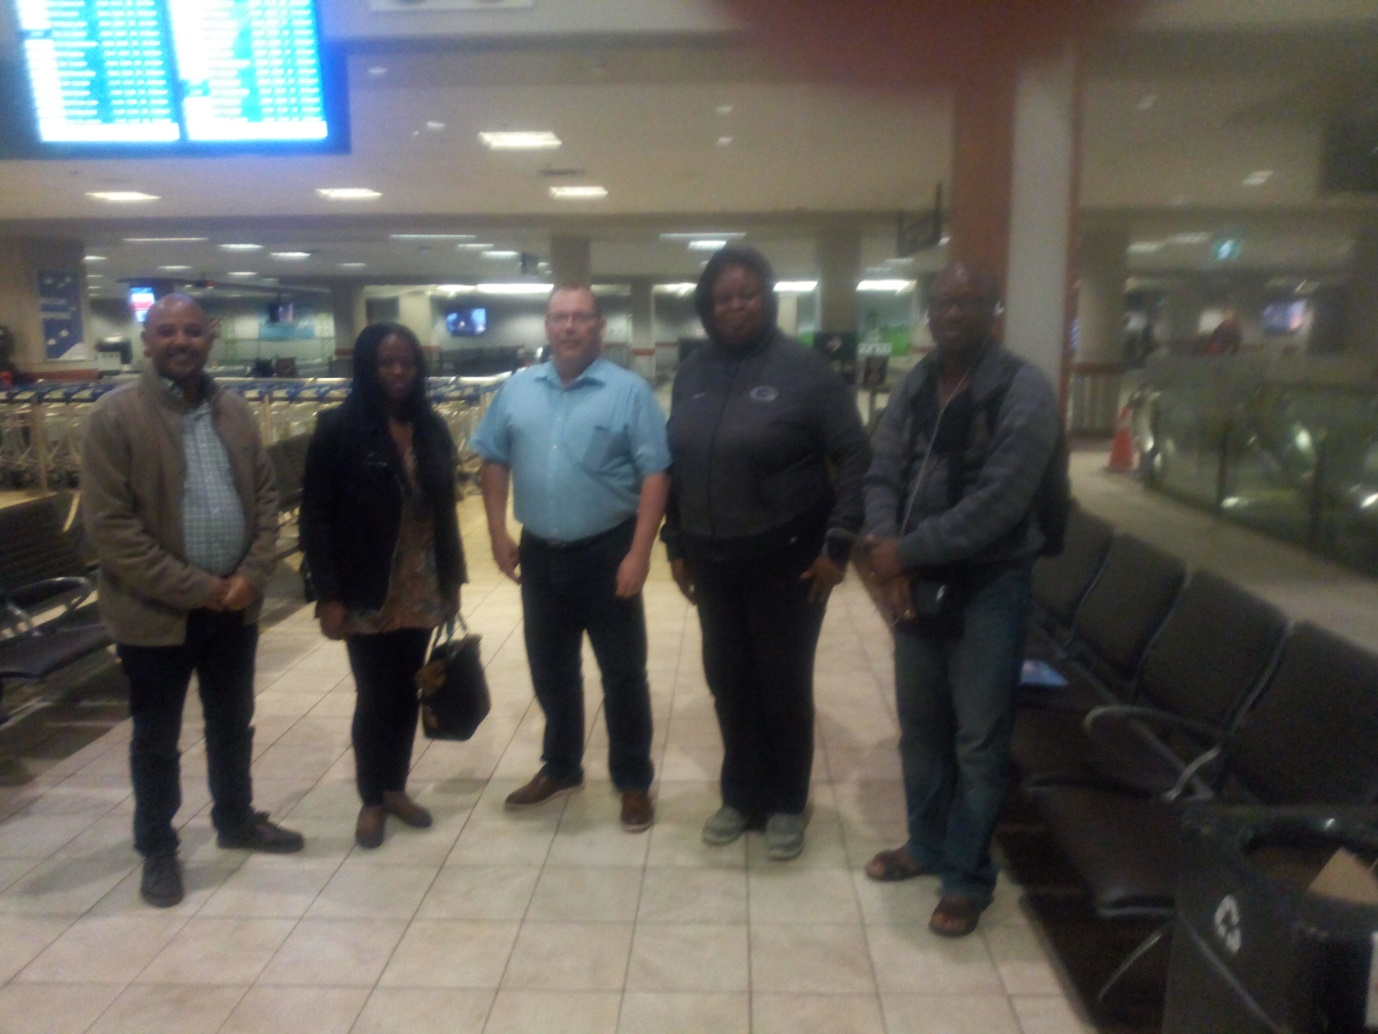 Arrival of some participants at Steinfield airport, Halifax, Canada.